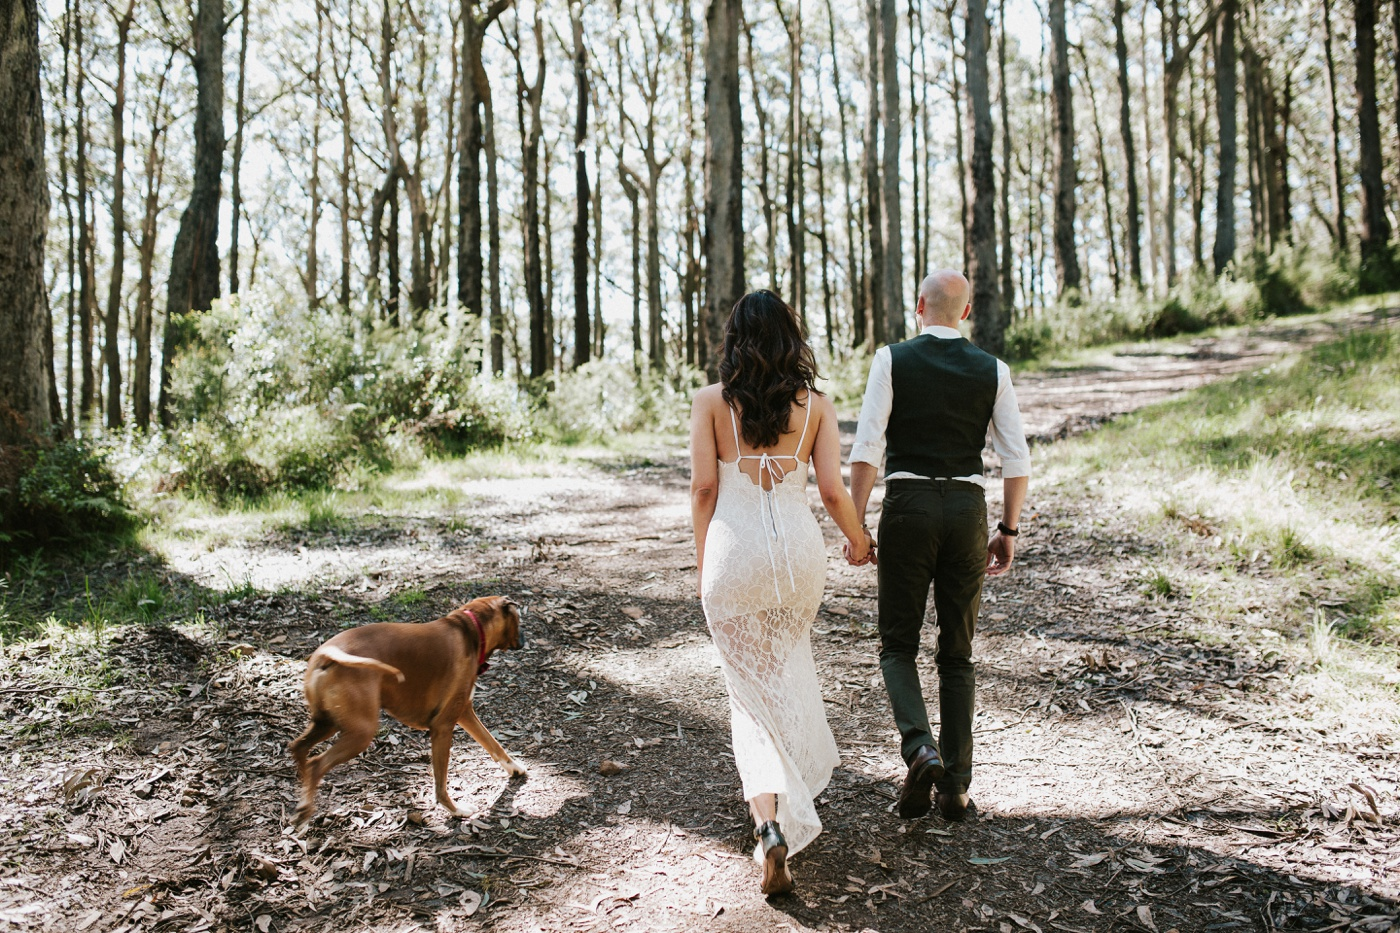 monicajames_dandenongs-dog-fun-relaxed-engagement-shoot_melbourne-fun-candid-wedding-photography_11